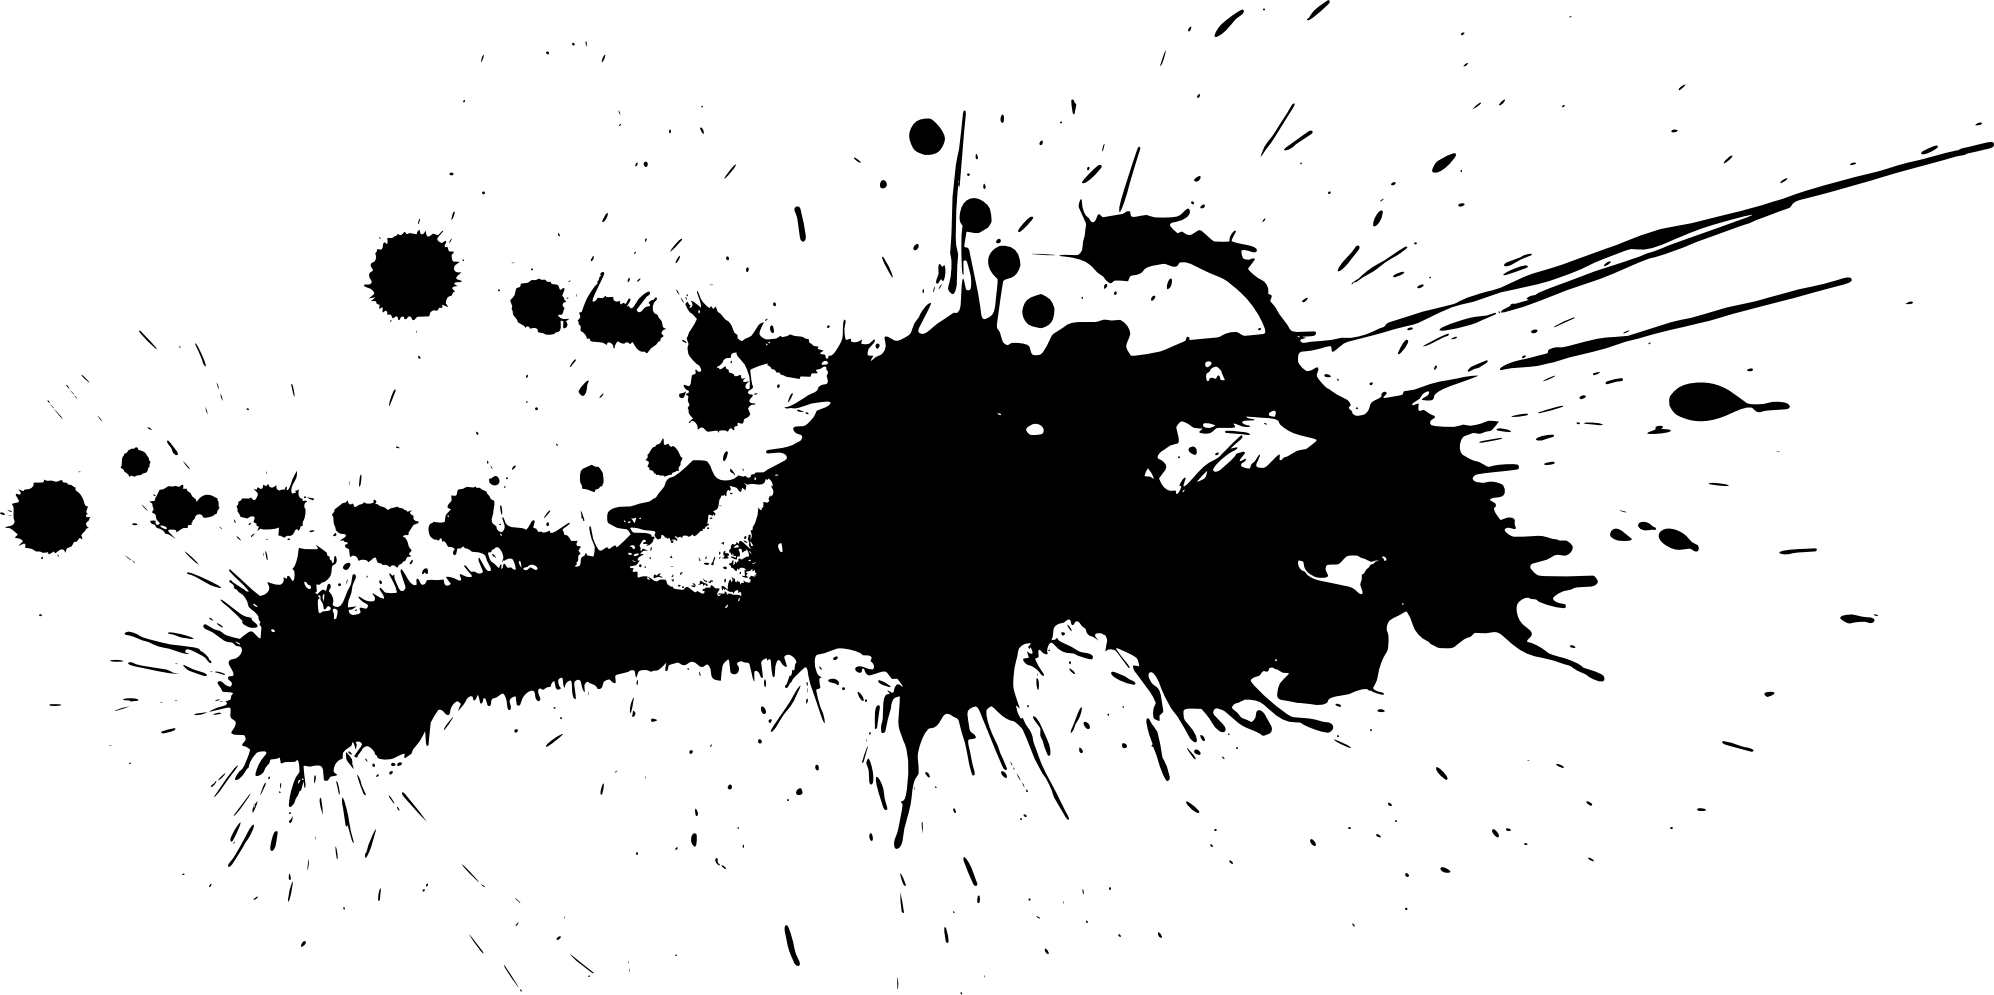 black paint splatter png